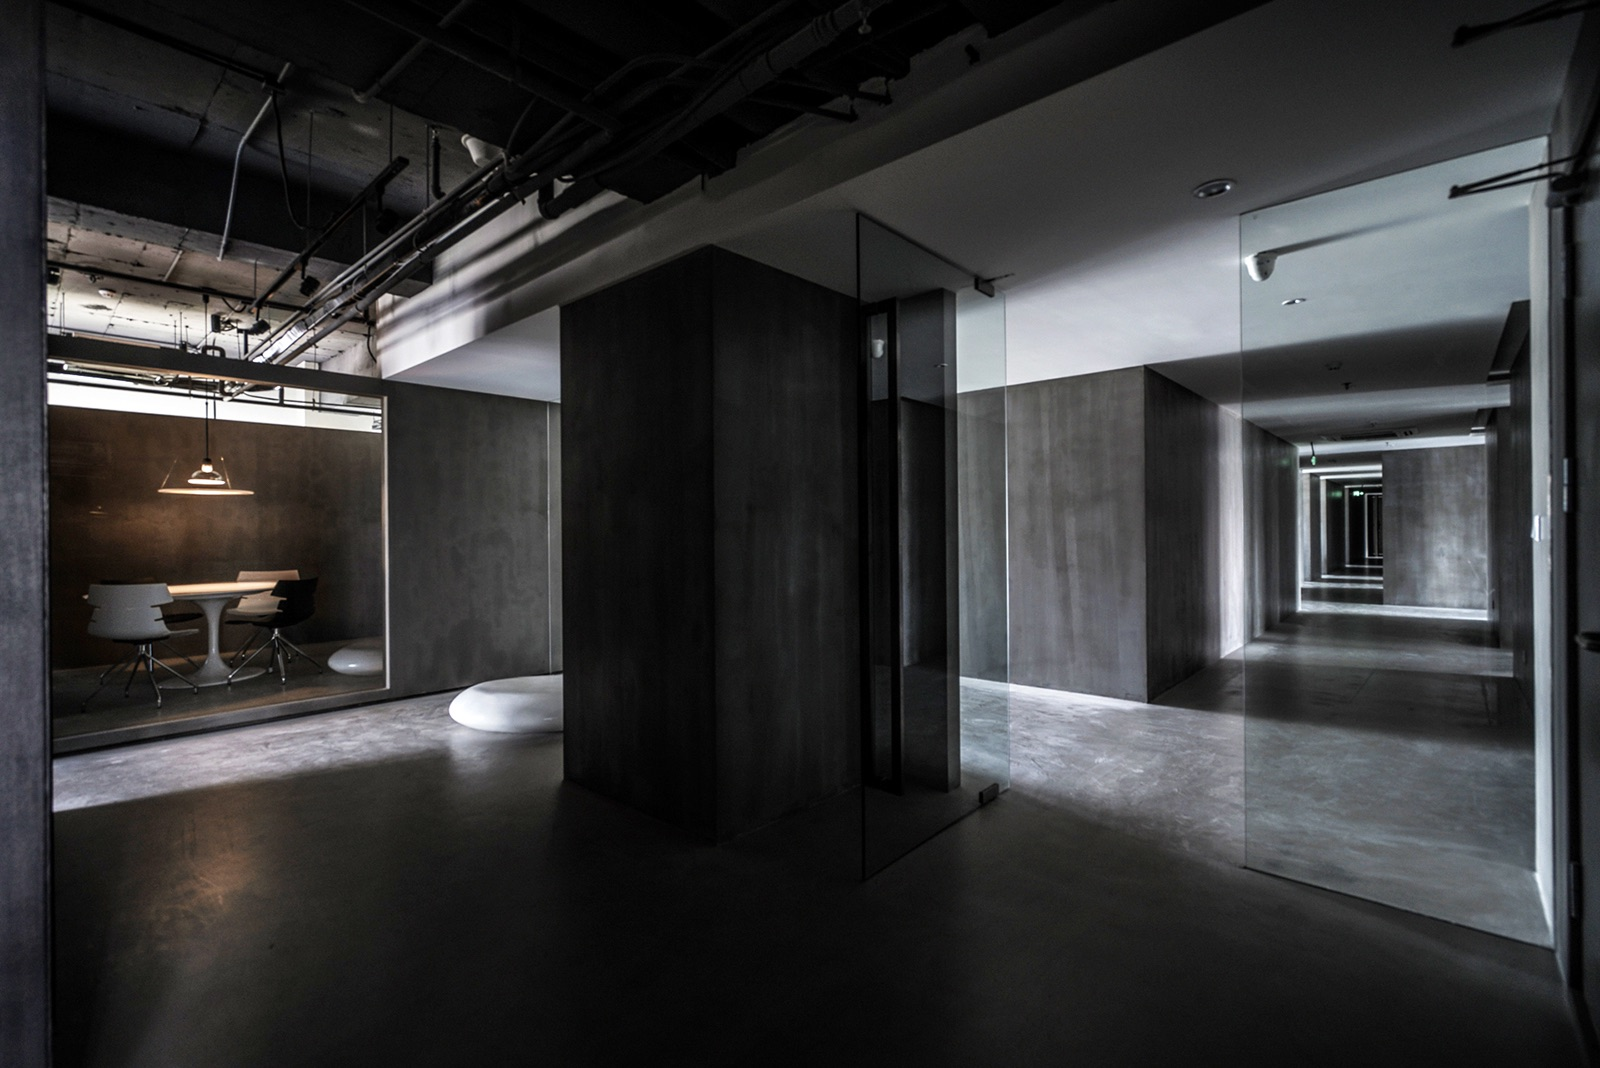 wei-design-nanjing-office-2